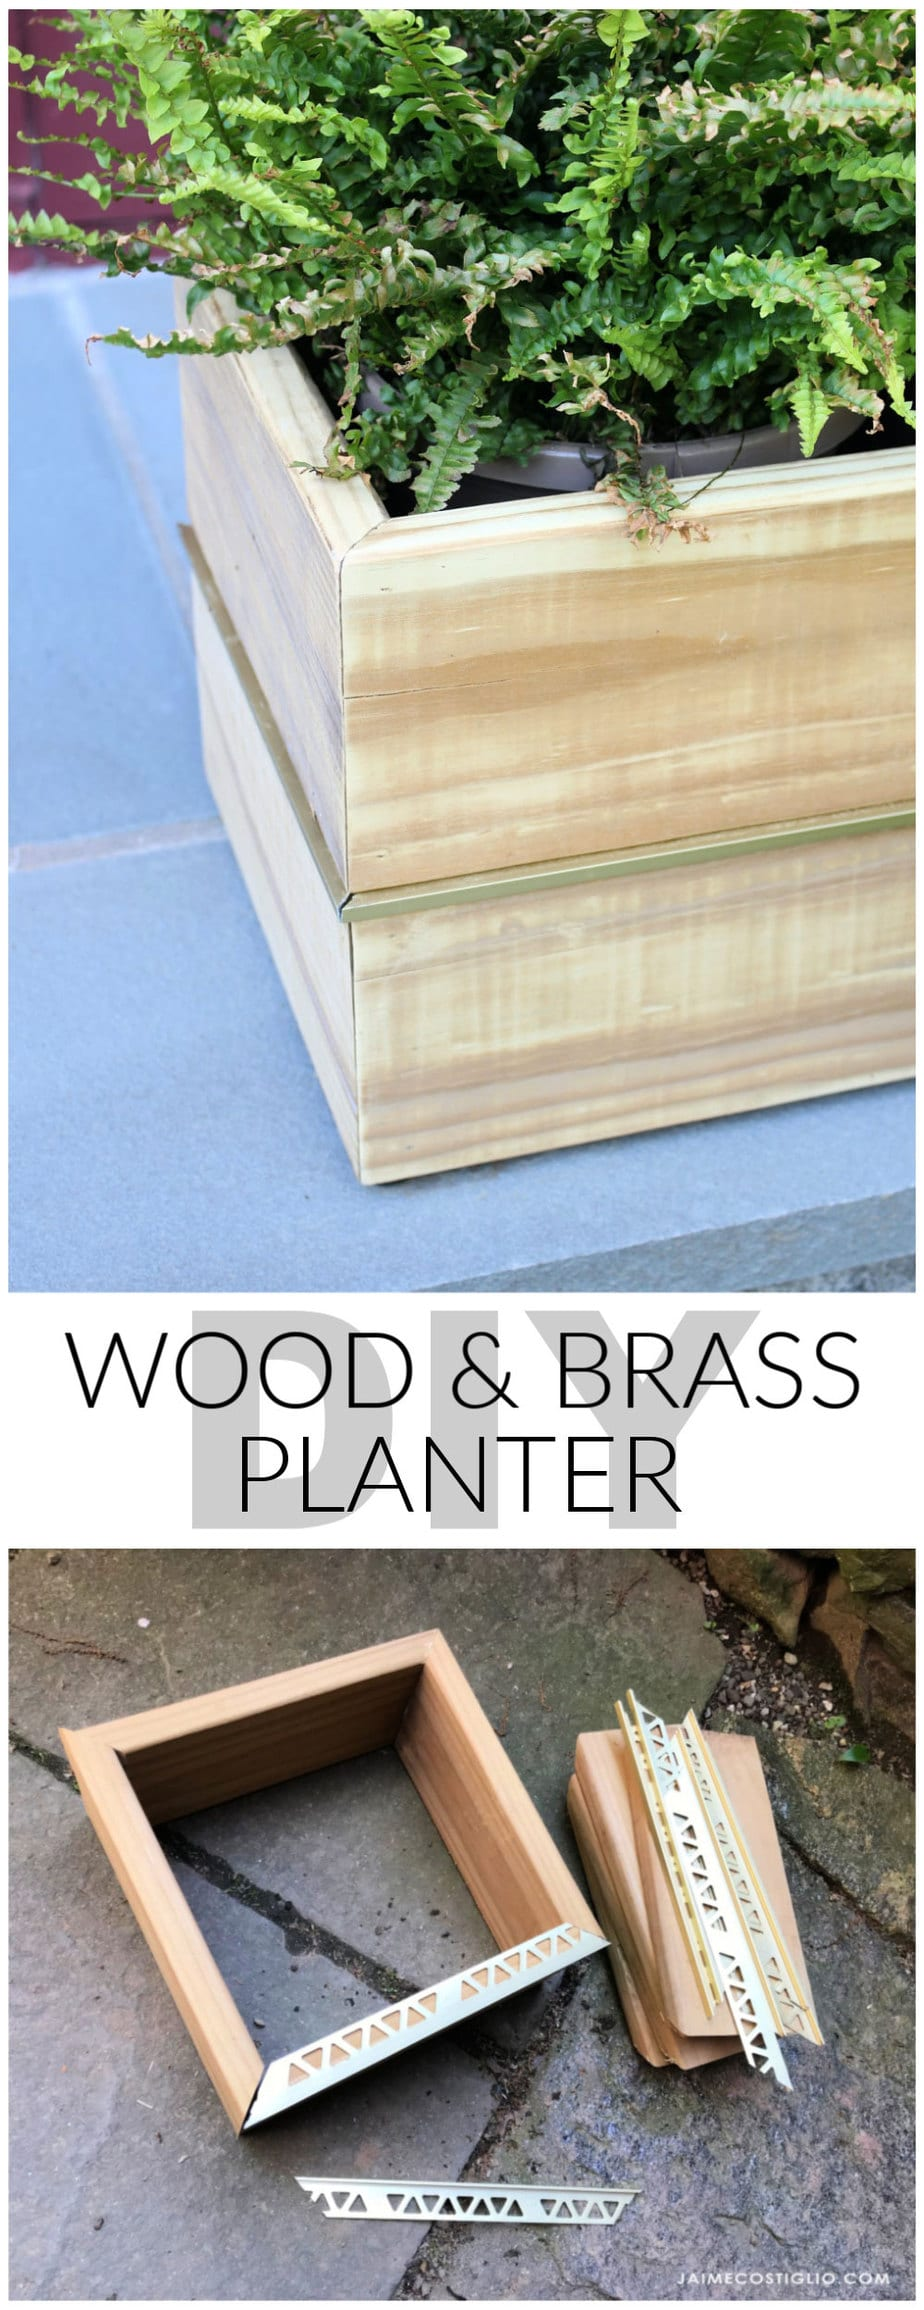 diy wood and brass planter plans